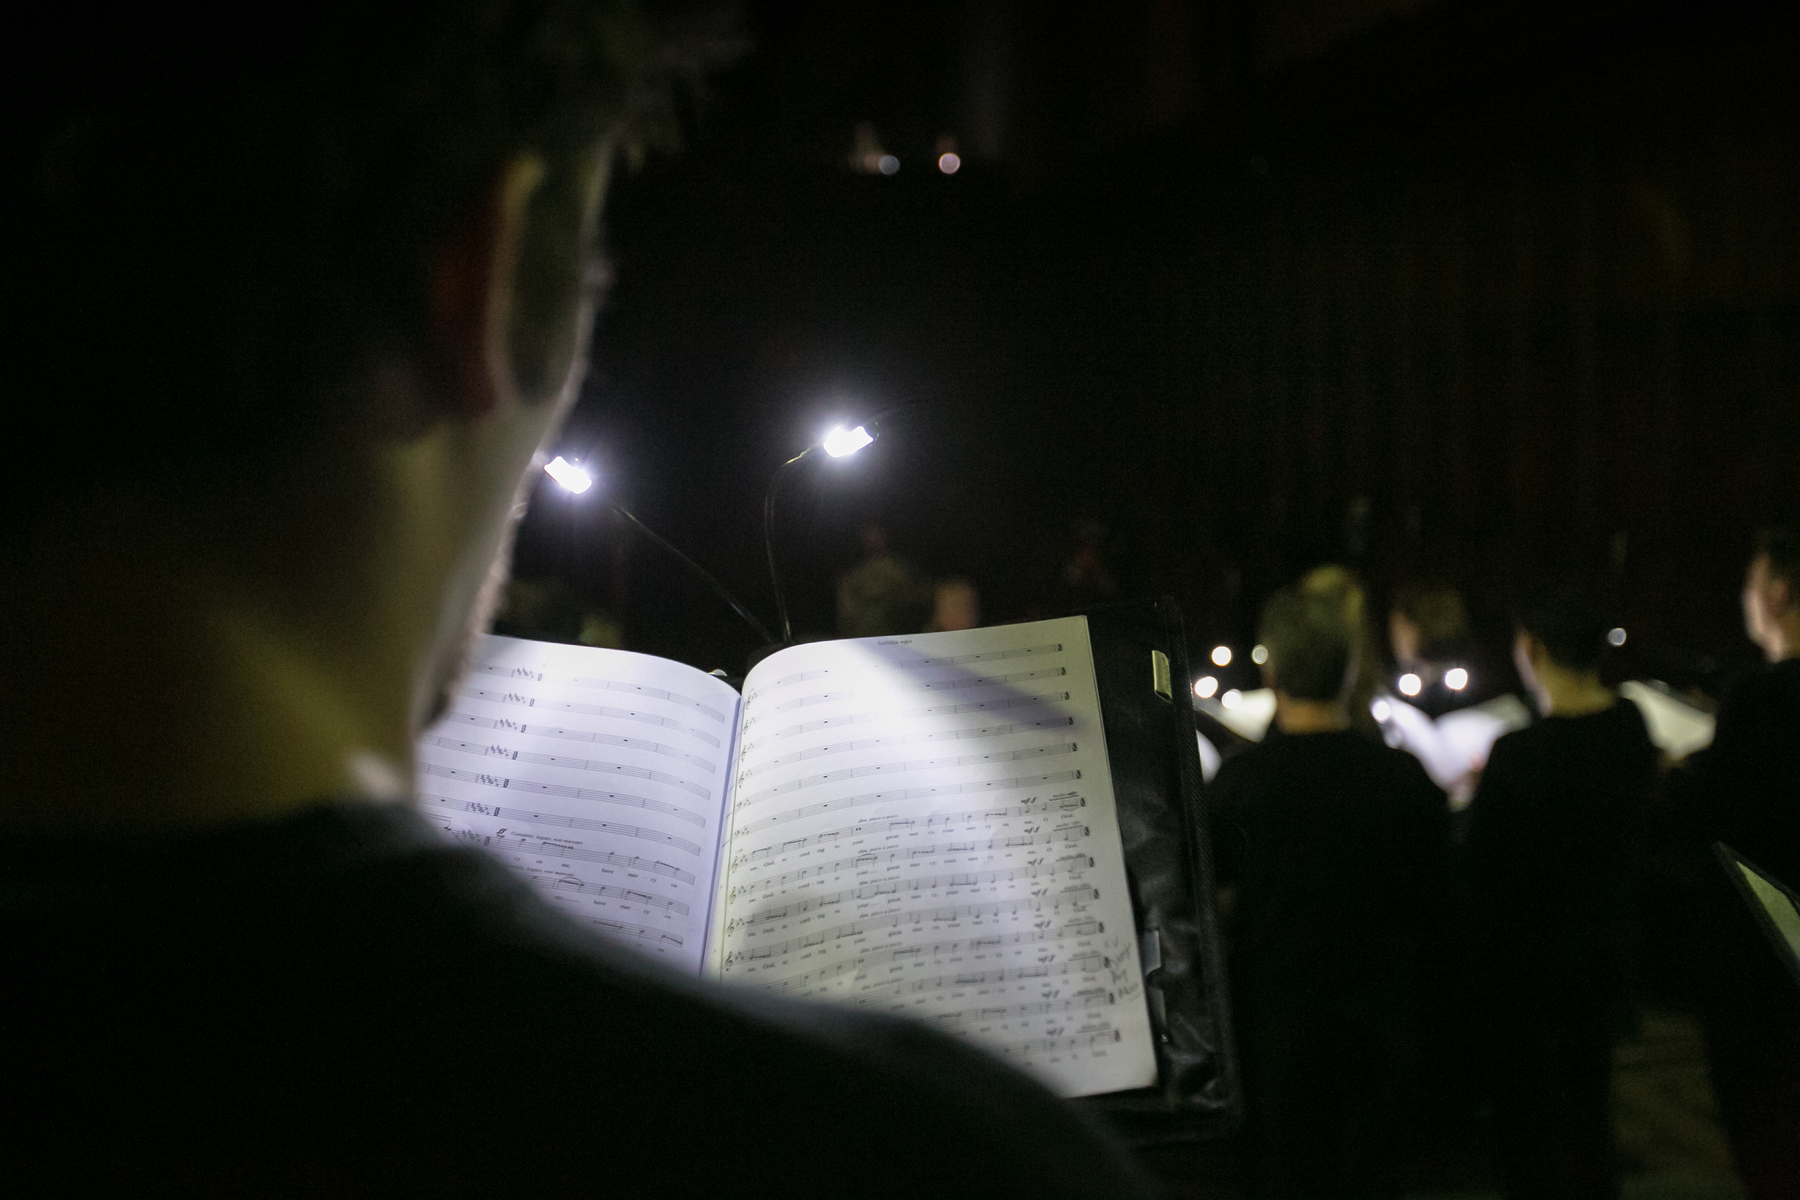 O light of light - A reflection on Thomas Tallis O Nata LuxTallis is often remembered for his impressive, technically ambitious and beautiful masterpiece, Spem In Alium. And yet, his simplest motets are the ones that have the most profound effect on me. At a little over 2 minutes in length, O Nata Lux is a masterclass in simplicity. It is a piece that has been distilled to its essence, nothing is superfluous. The result is a beautiful motet with a piercing clarity of intention. I have borrowed a handful of melodic clippings and some of my favourite harmonies from the original to create a piece that, I hope, amplifies my interpetation of O Nata Lux: a heartfelt plea to be accepted into heaven at the end of life on earth.WORLD PREMIERE: 1st February 2017, Cutty Sark, GreenwichALBUM: Many are the Wonders